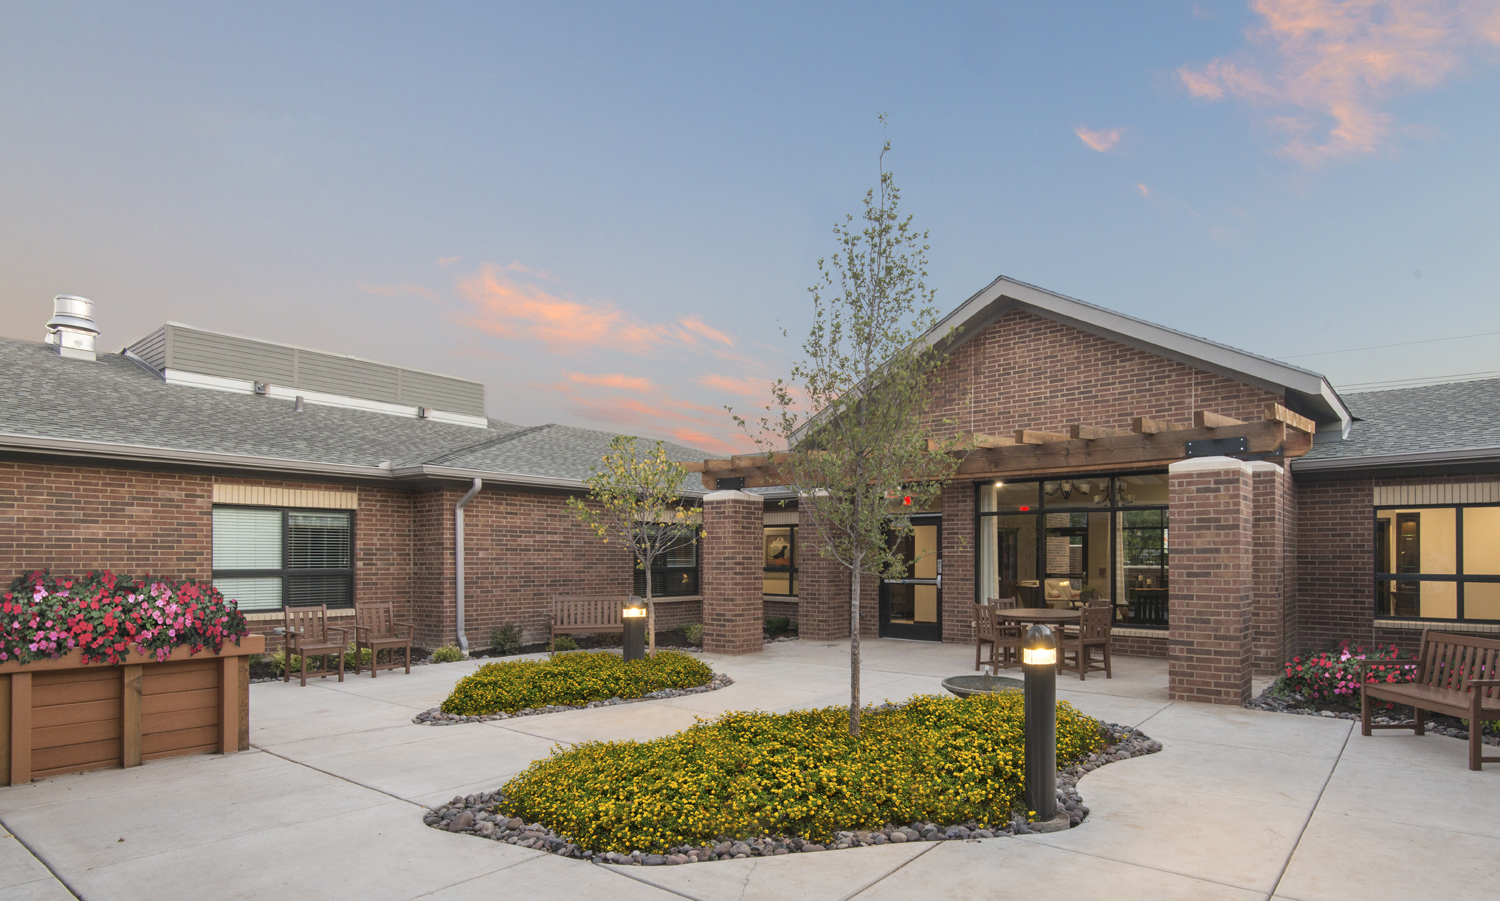 Sycamore Memory Care Center Amarillo Texas Pi Architects Courtyard